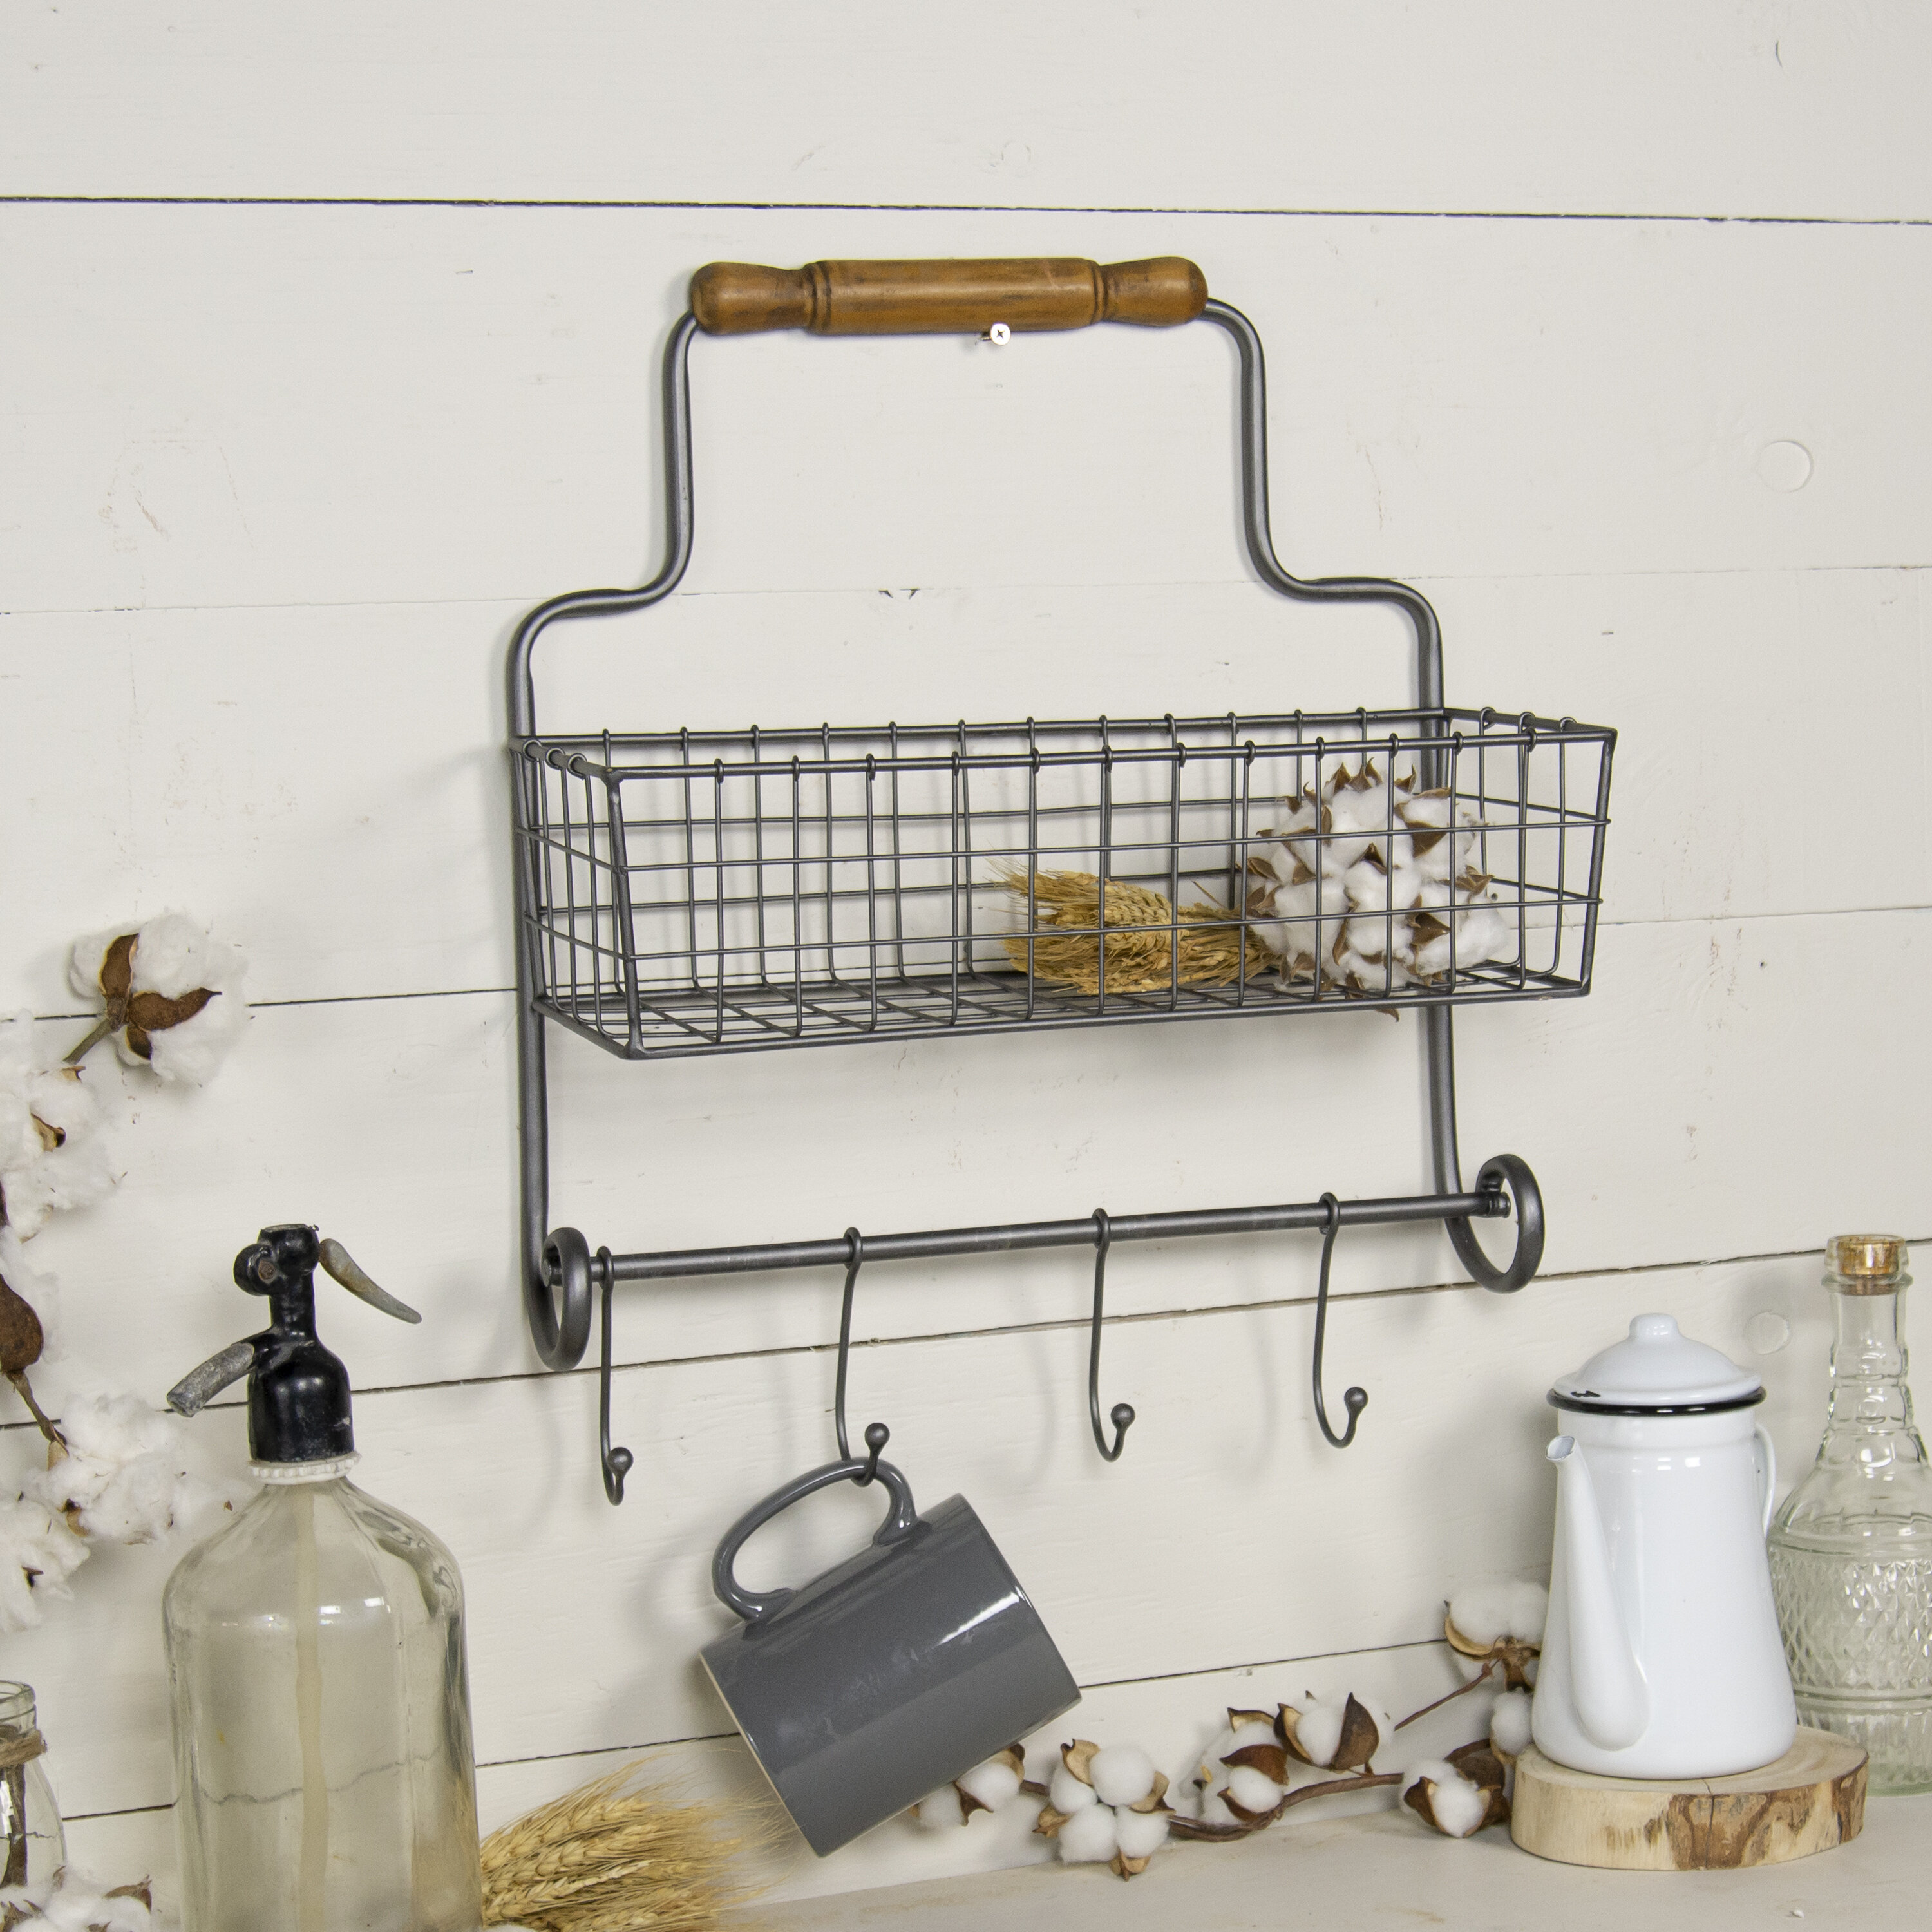 Erie Metal Wall Organizer with Baskets